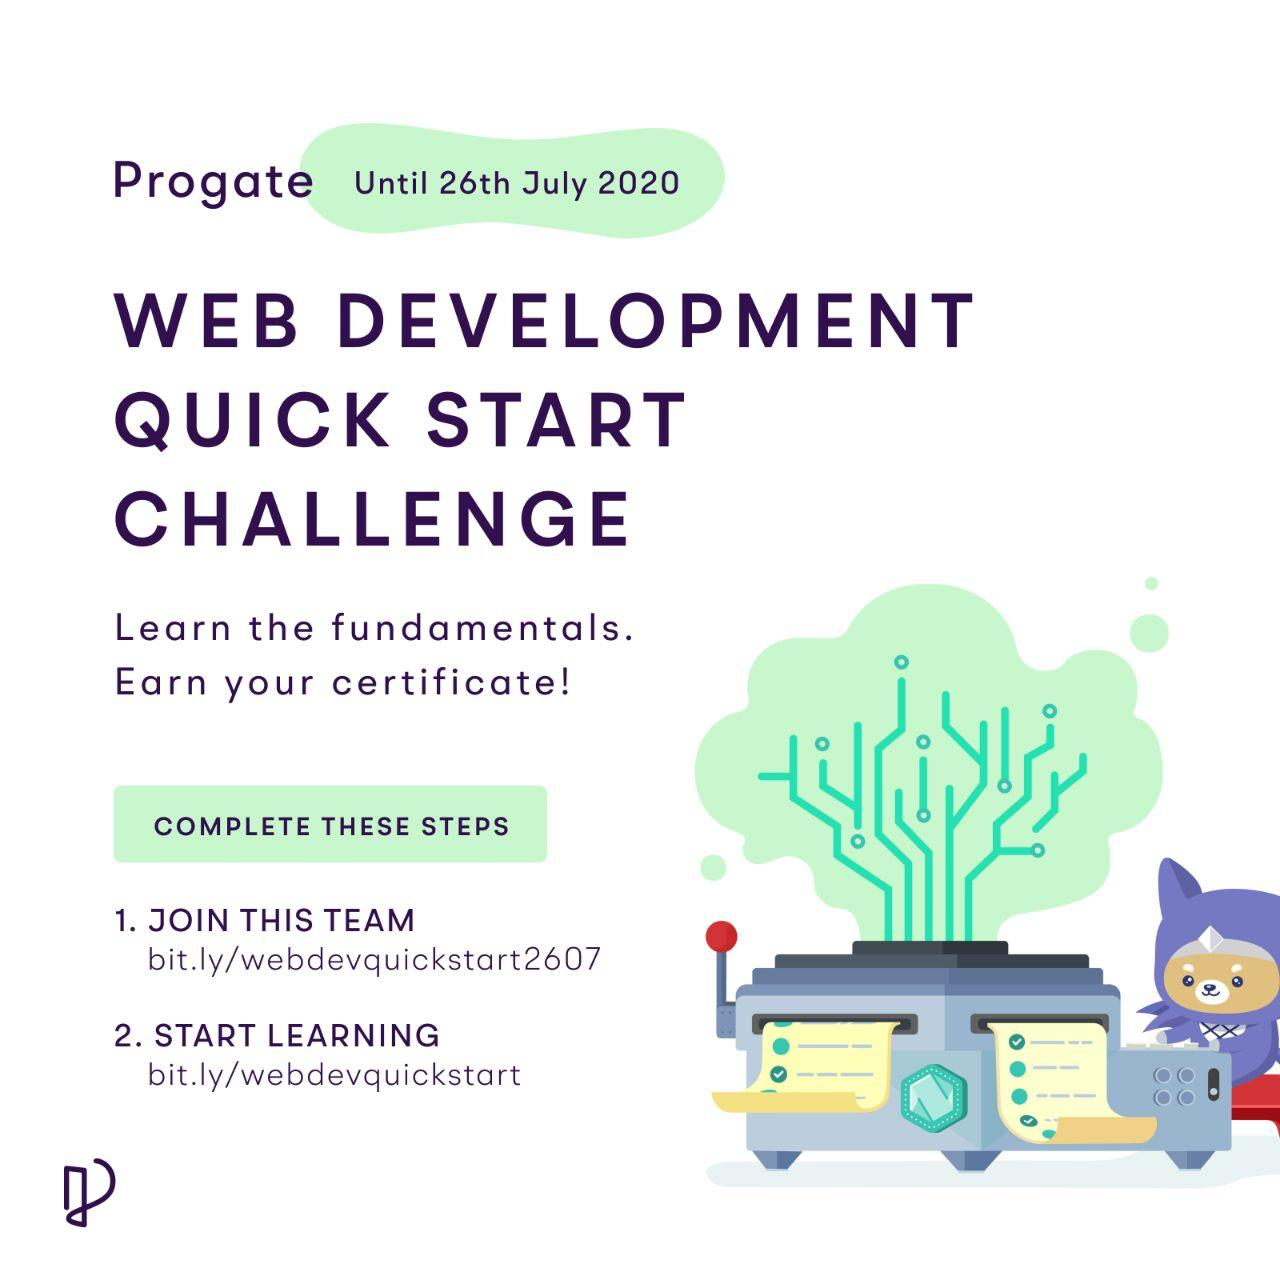 Progate is hosting Web Development Quick Start Challenge till 26th July 2020